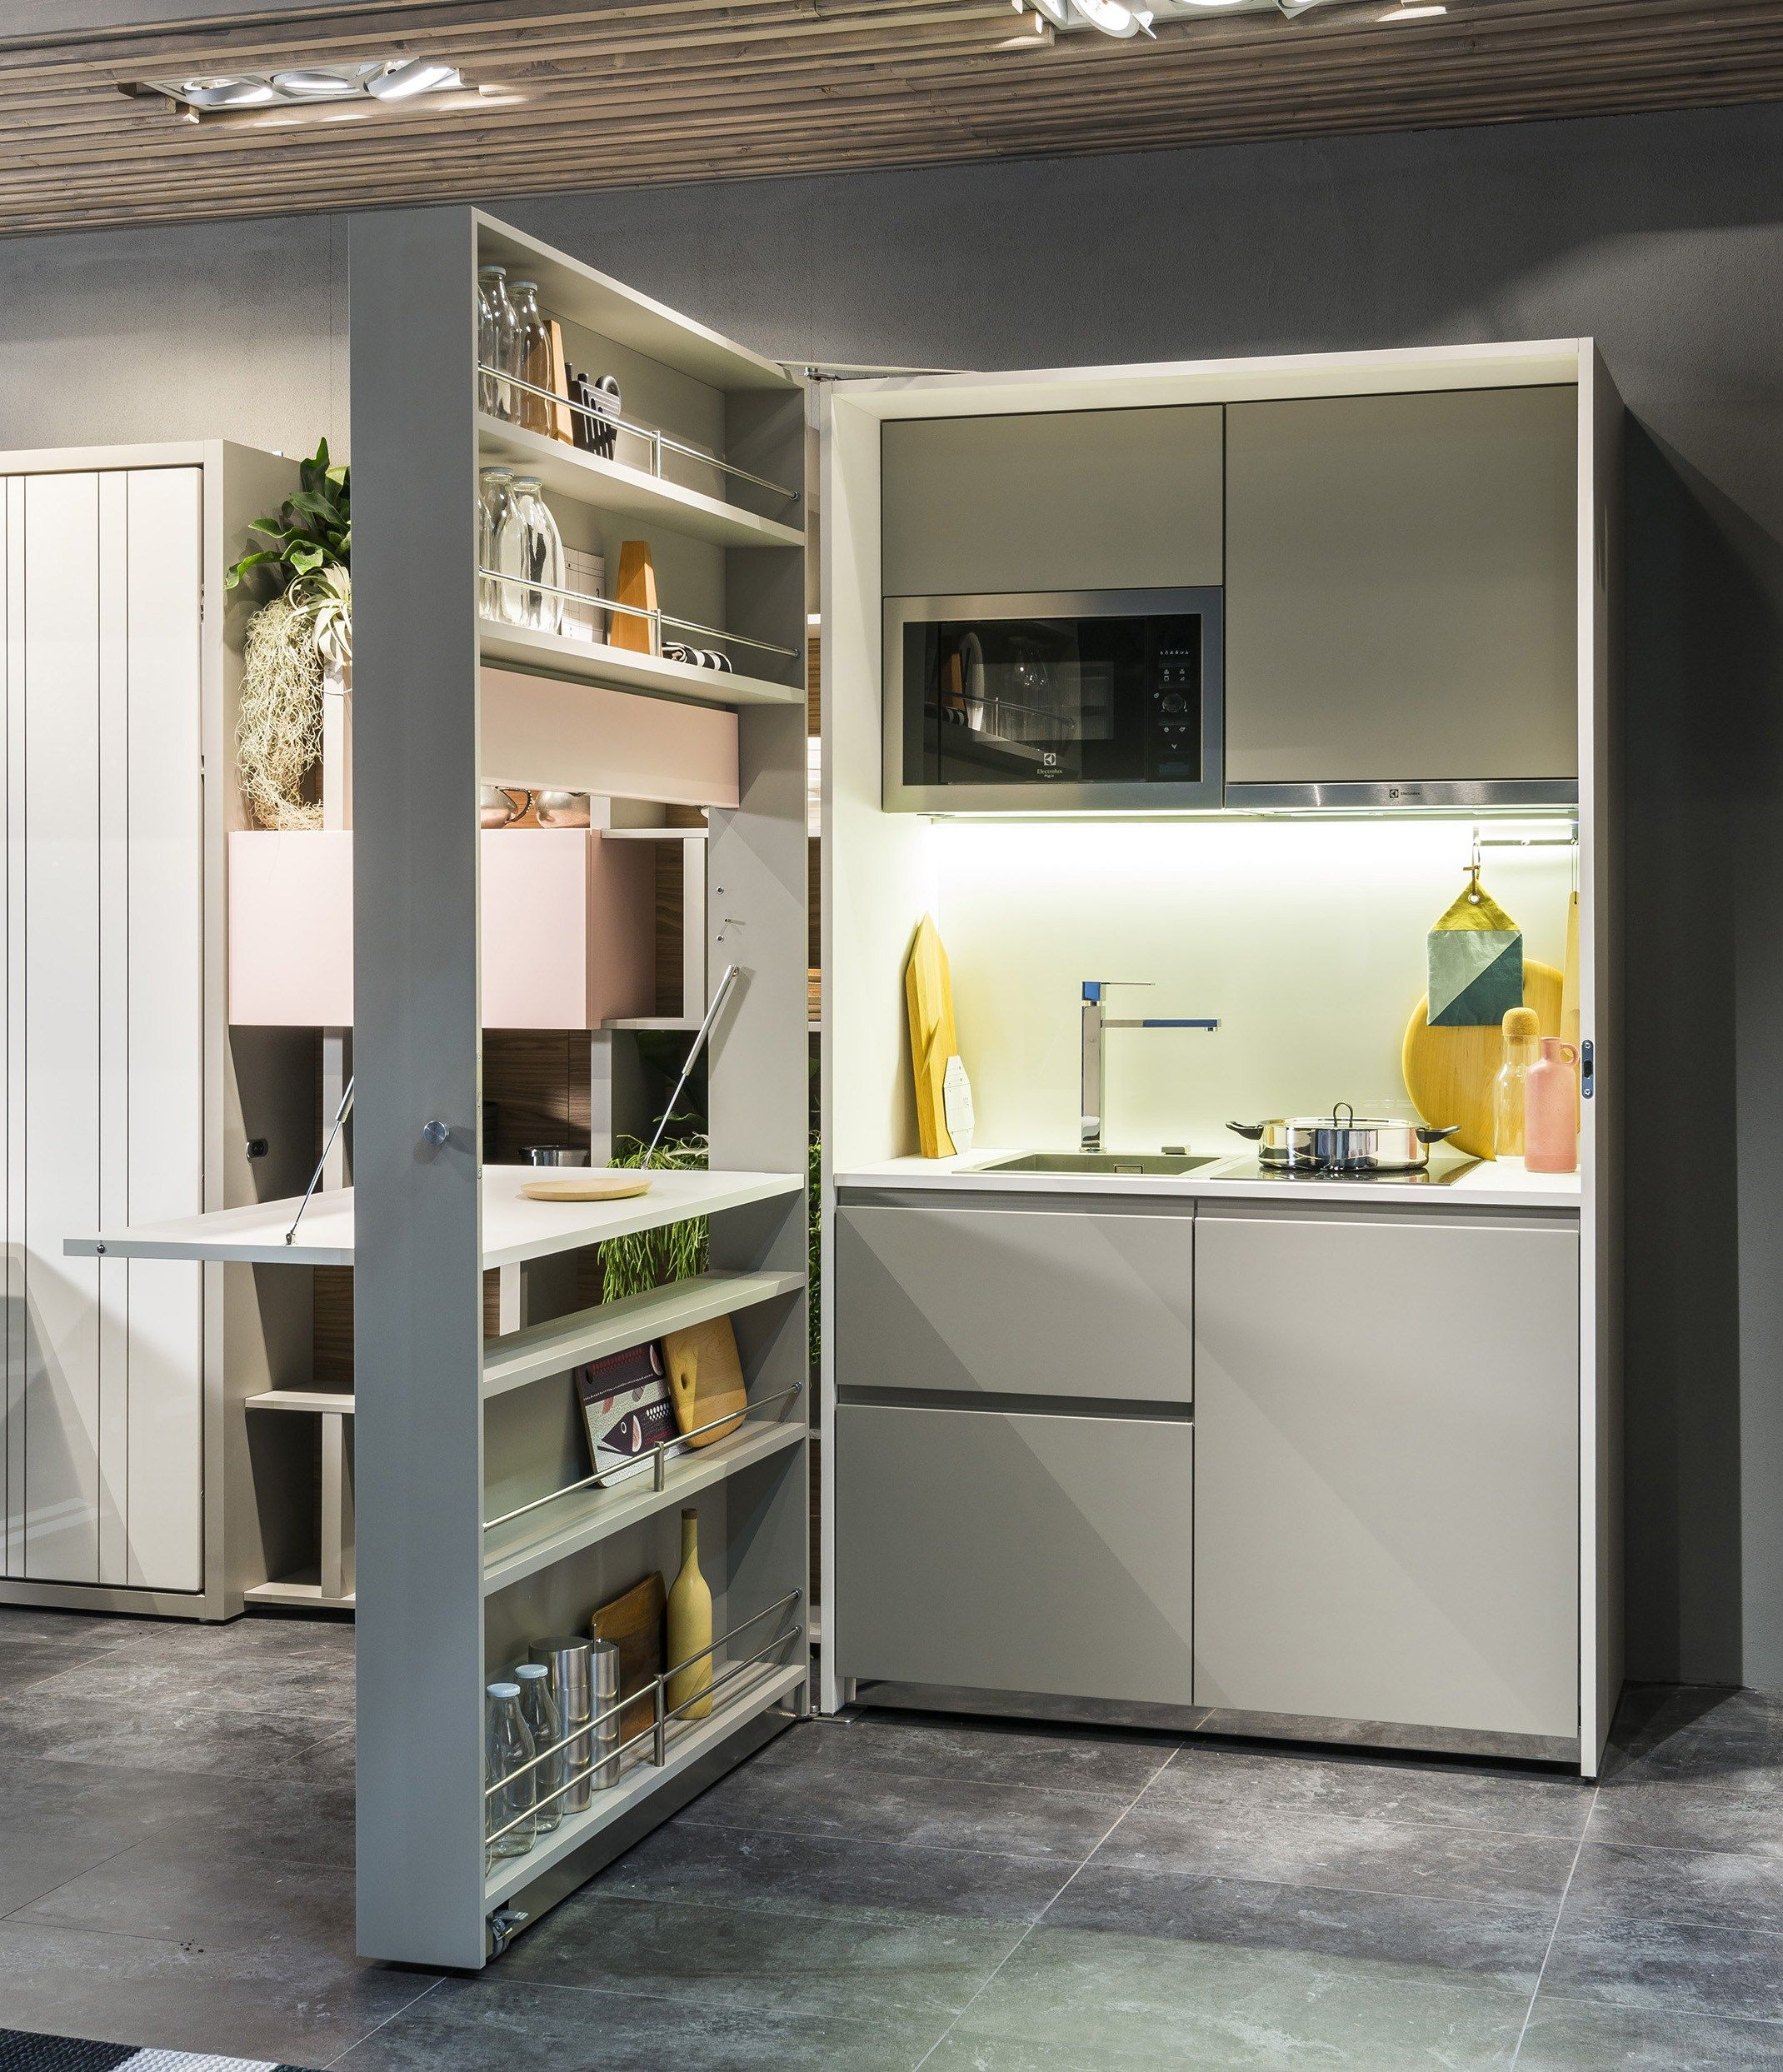 Cucina a scomparsa laccata KITCHEN BOX by CLEI | Muebles ...